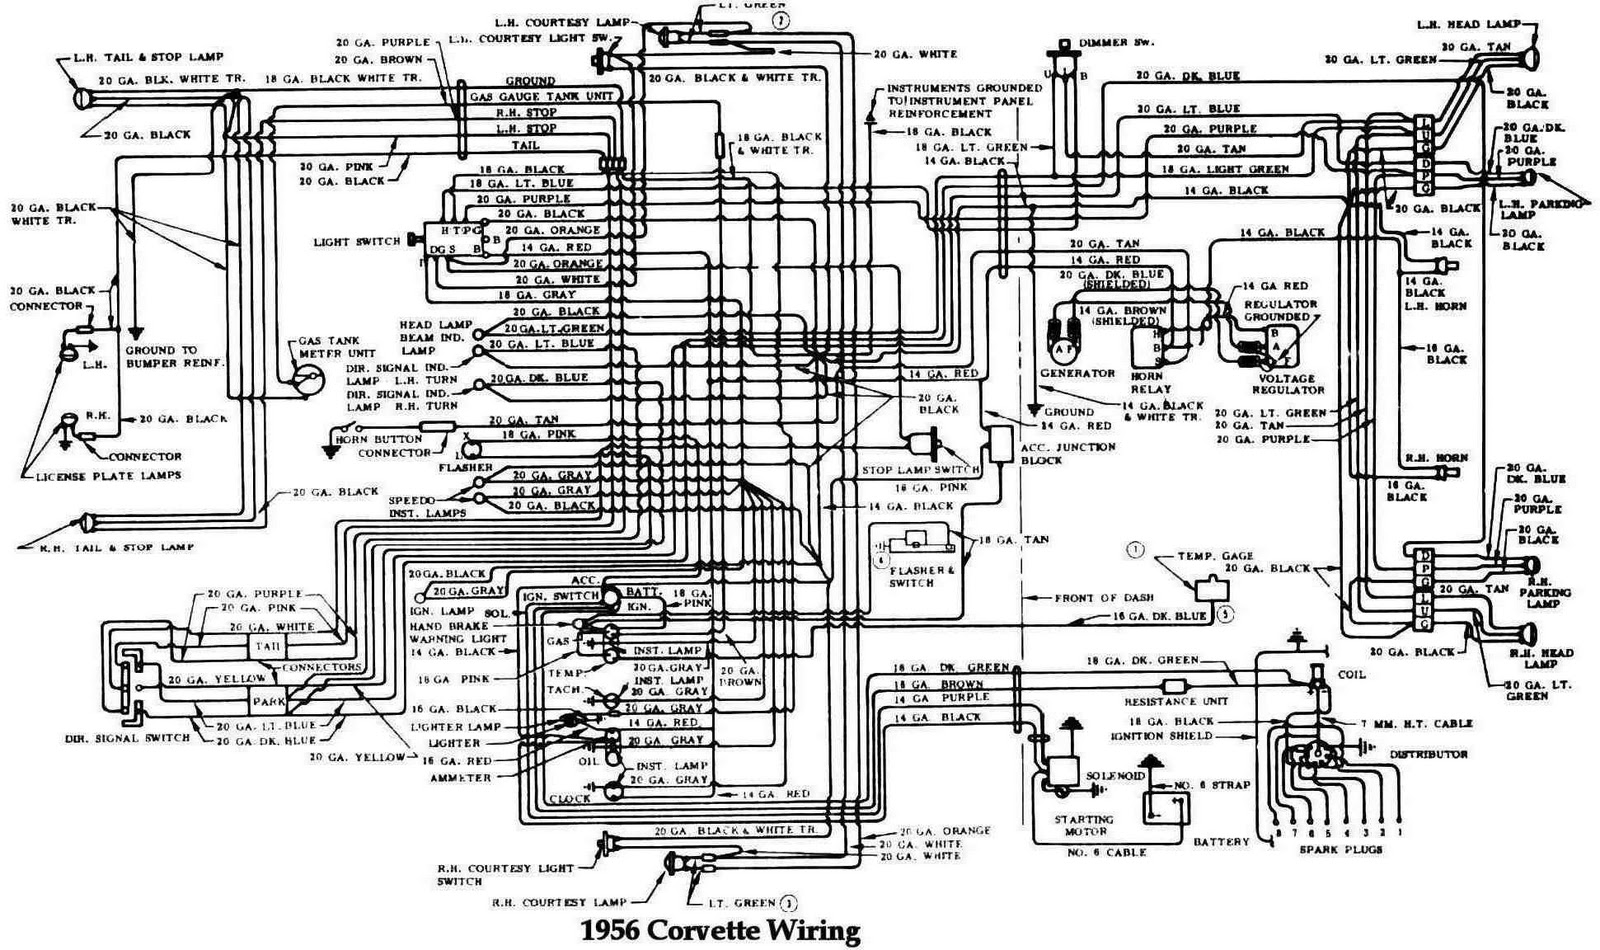 [DIAGRAM_09CH]  E1A 1988 Corvette Ac Wiring Diagram | Wiring Library | 1984 Corvette Ac Wiring Diagram |  | Wiring Library